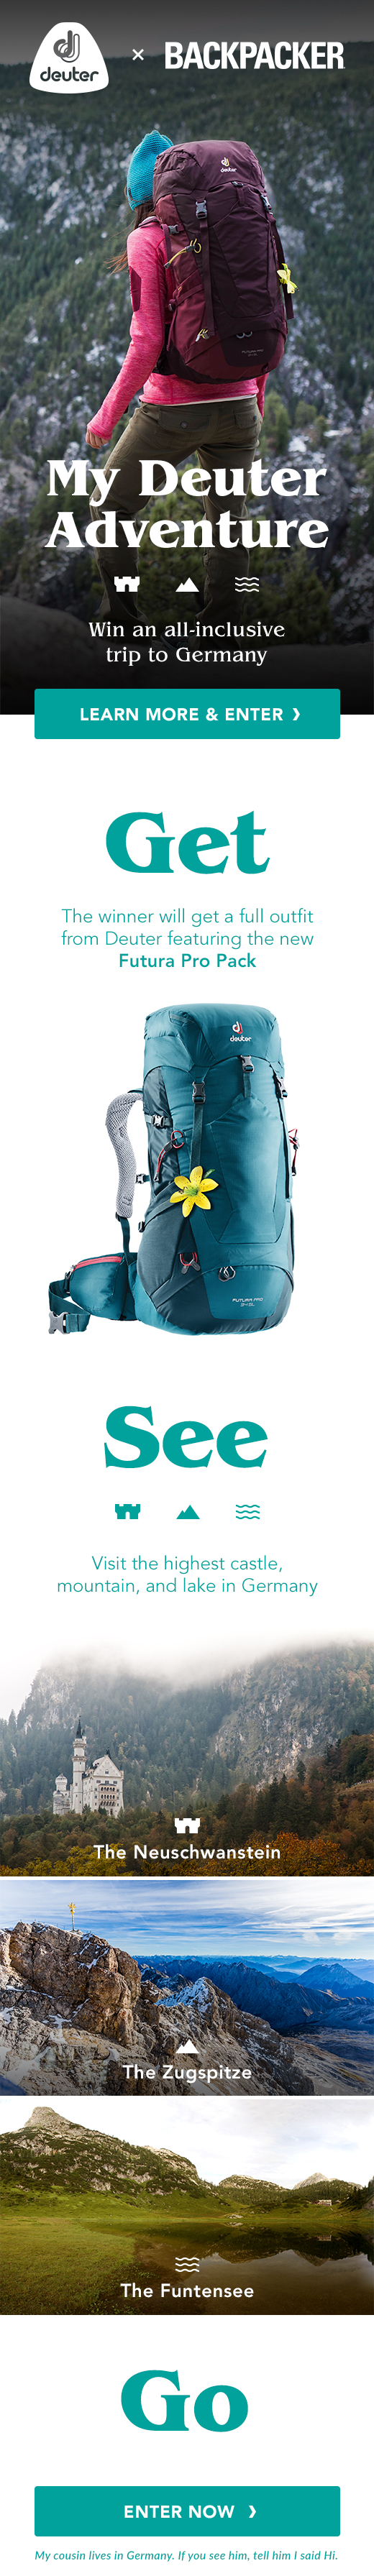 My-Deuter-Adventure-Mailer.jpg